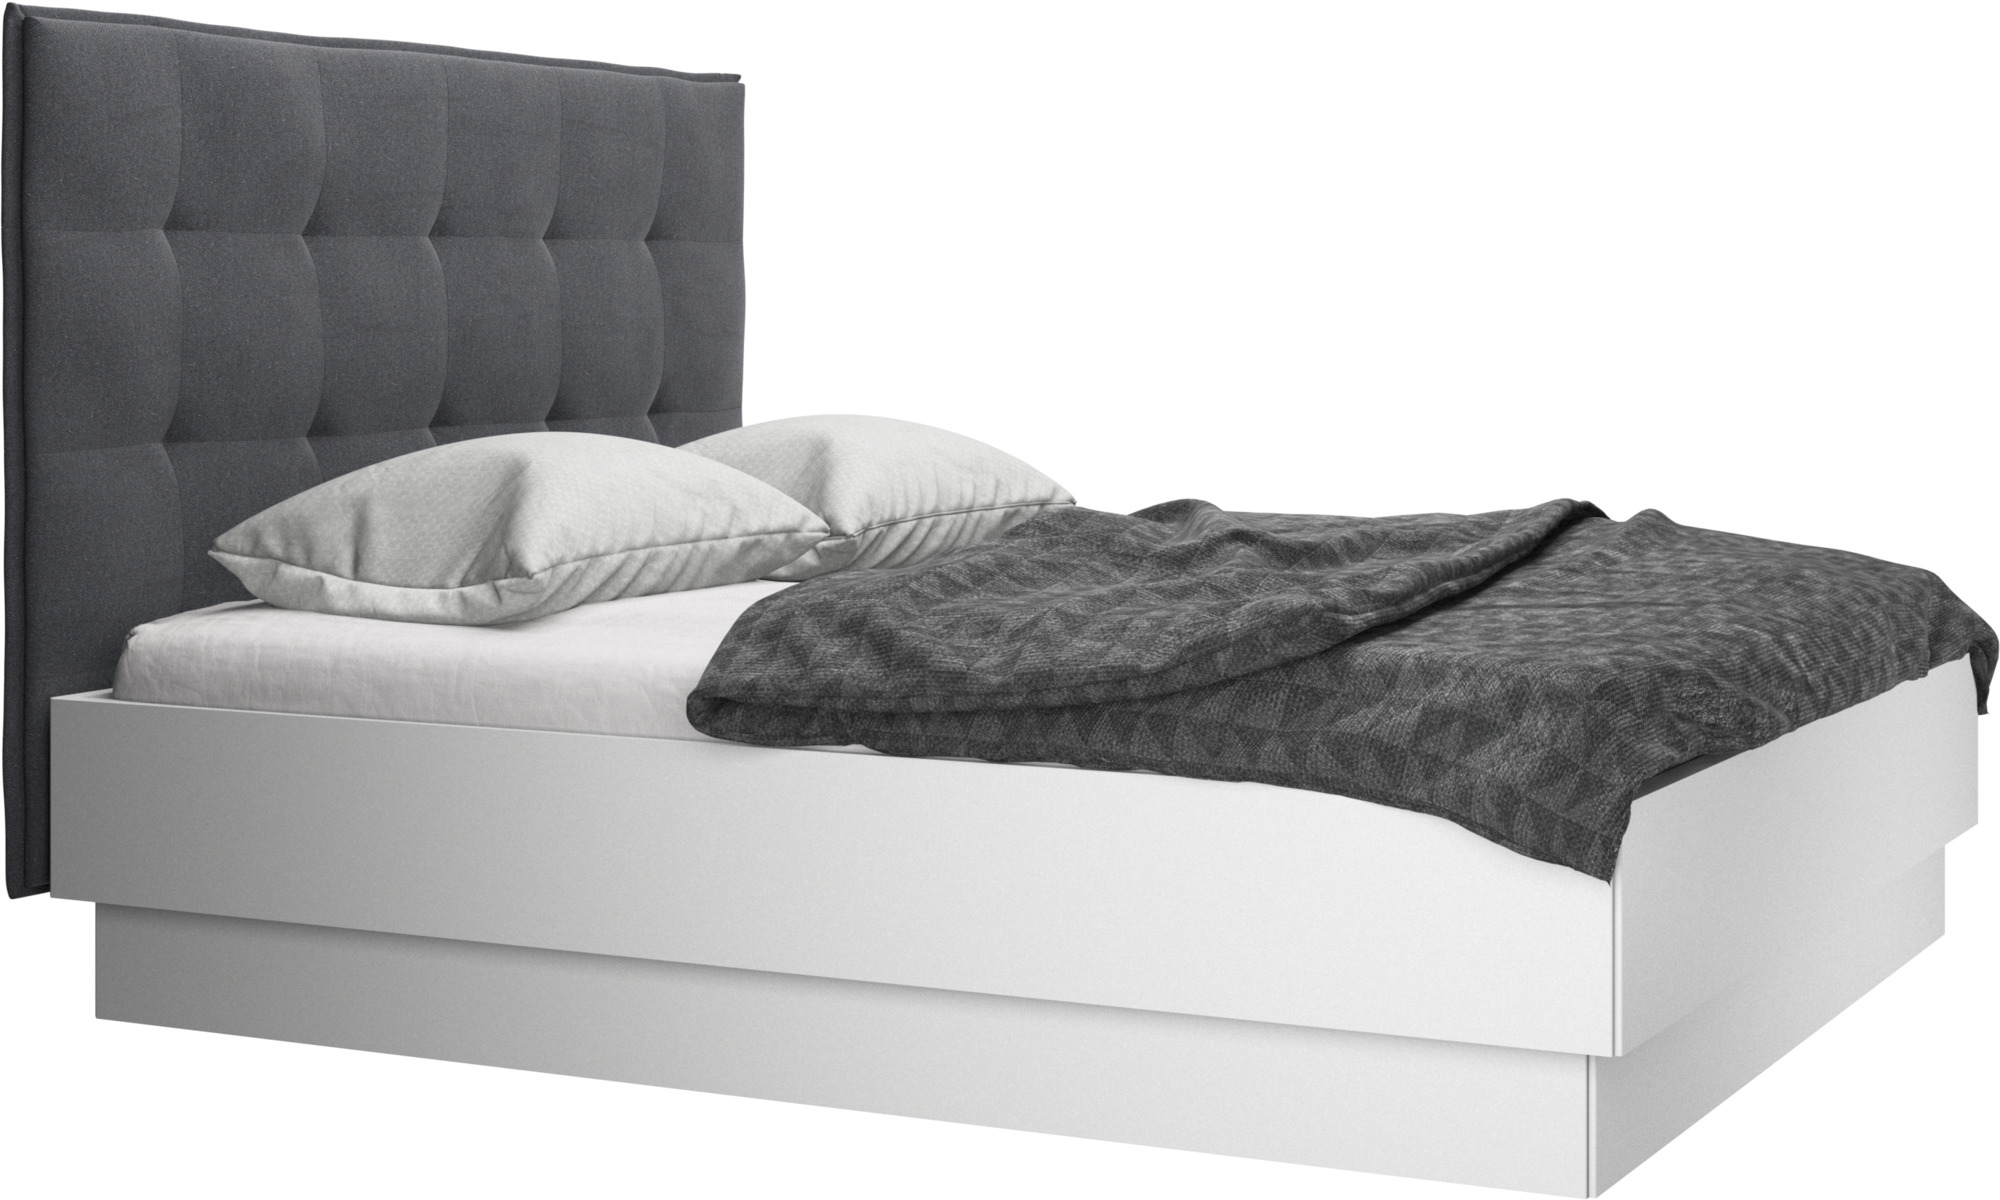 Beds - Lugano storage bed with lift-up frame and slats, excl. mattress - Grey - Fabric